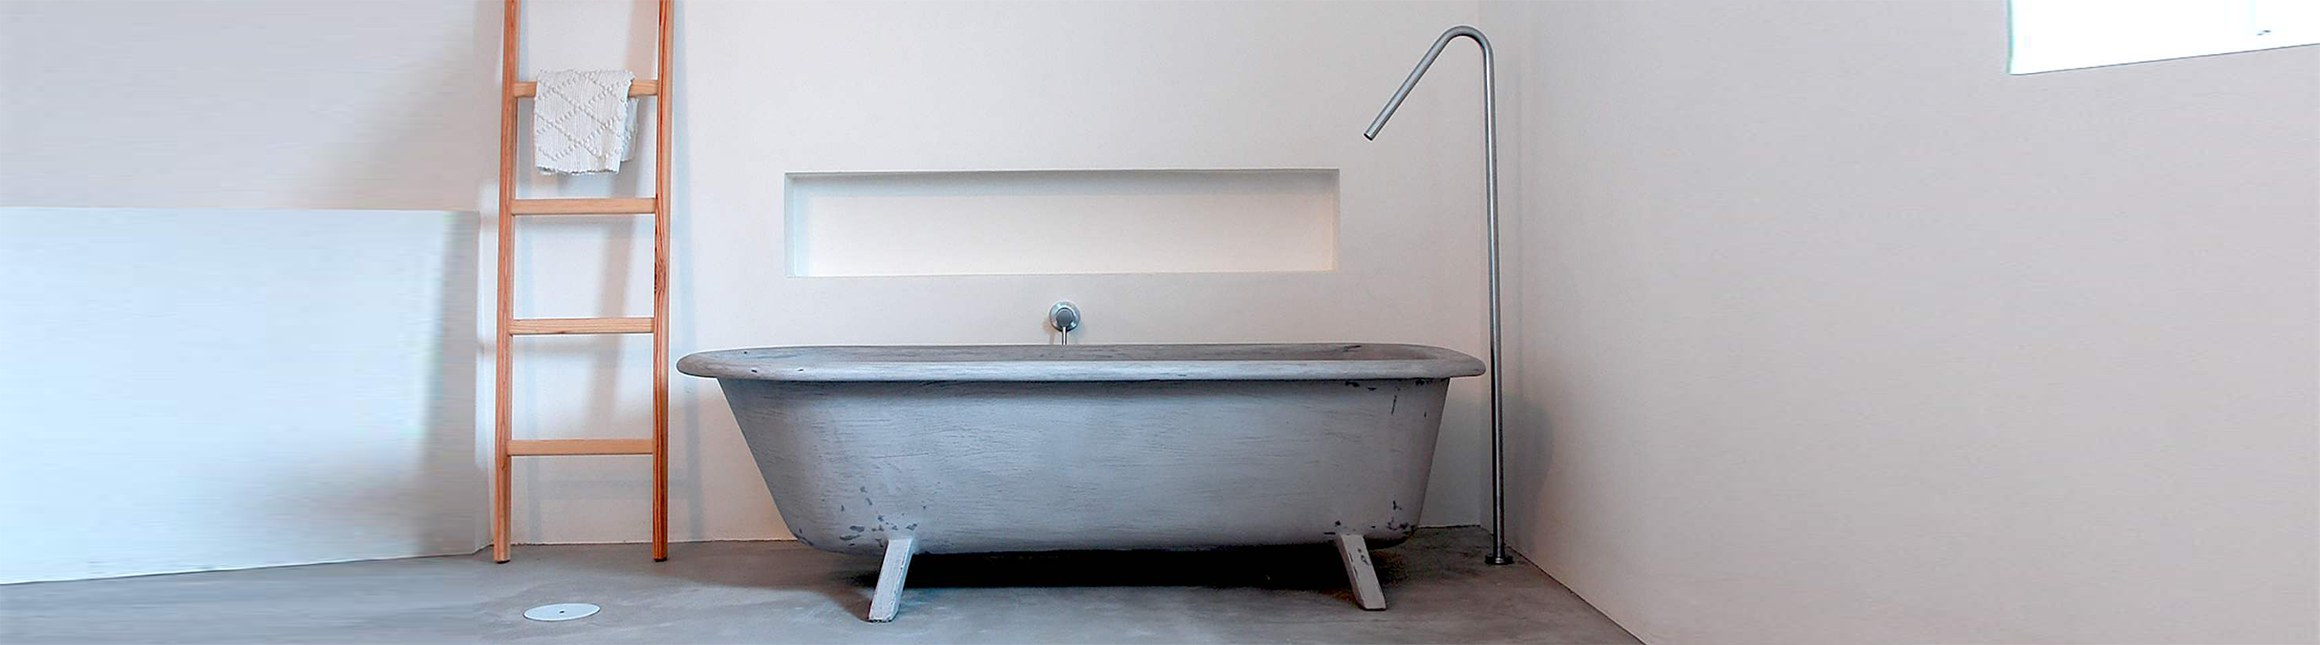 Urbidynamic micro-cement bath tub